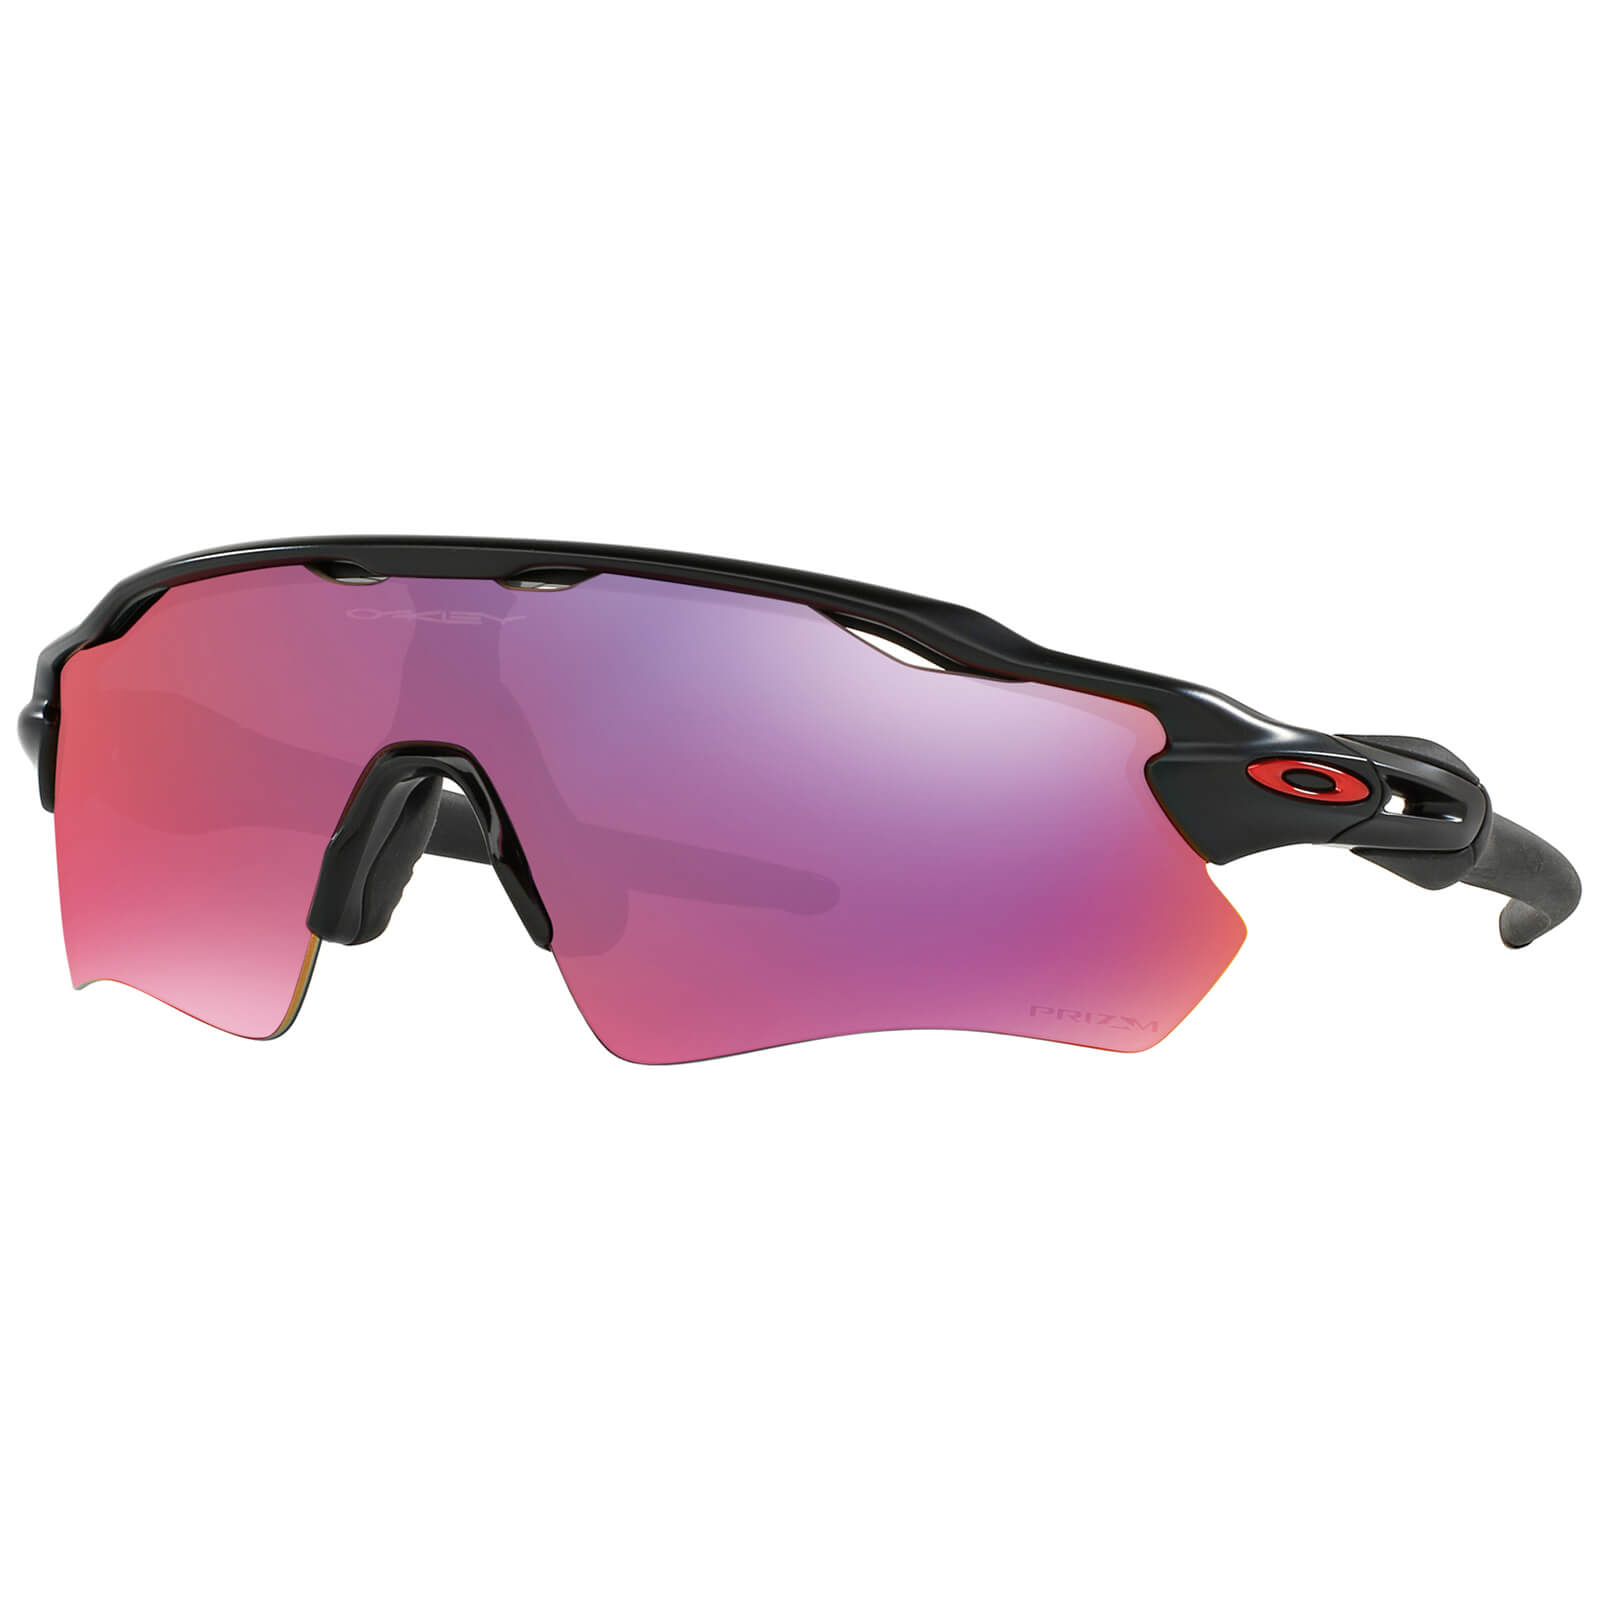 e8e993c661762 Oakley Radar EV Path Sunglasses - Matte Black Prizm Road